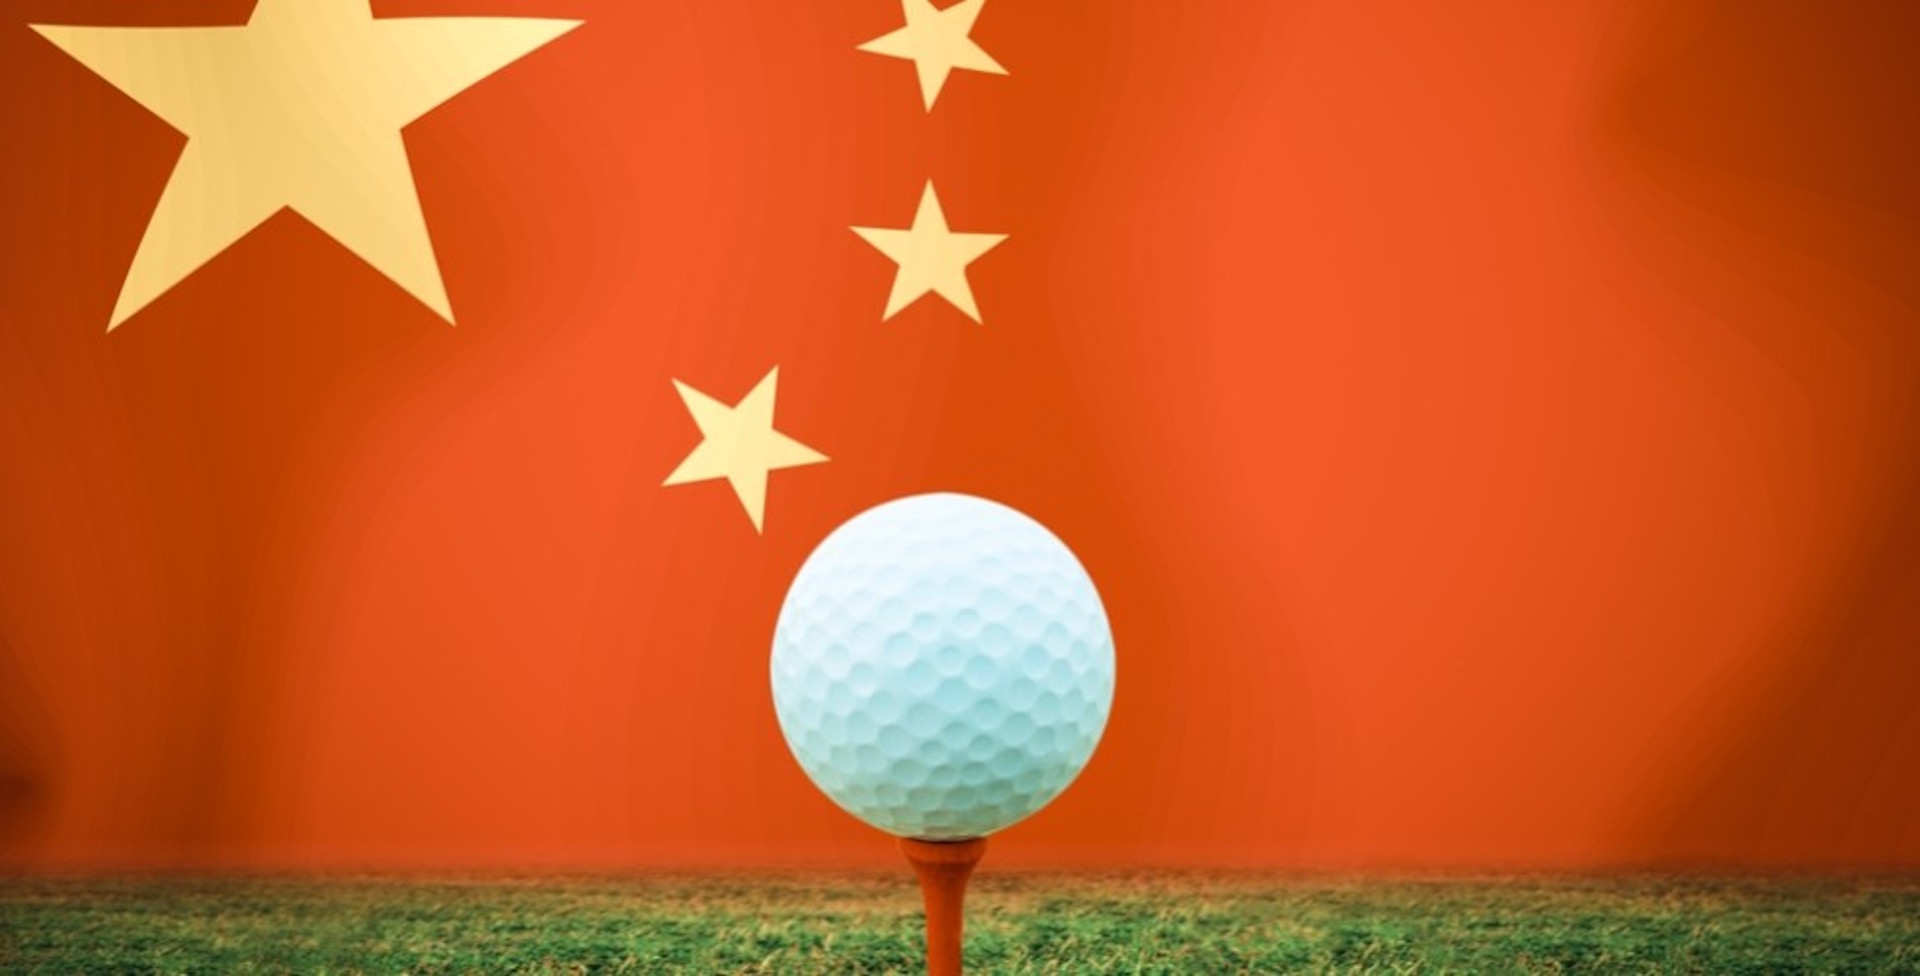 Golf is now compulsory in a Chinese school